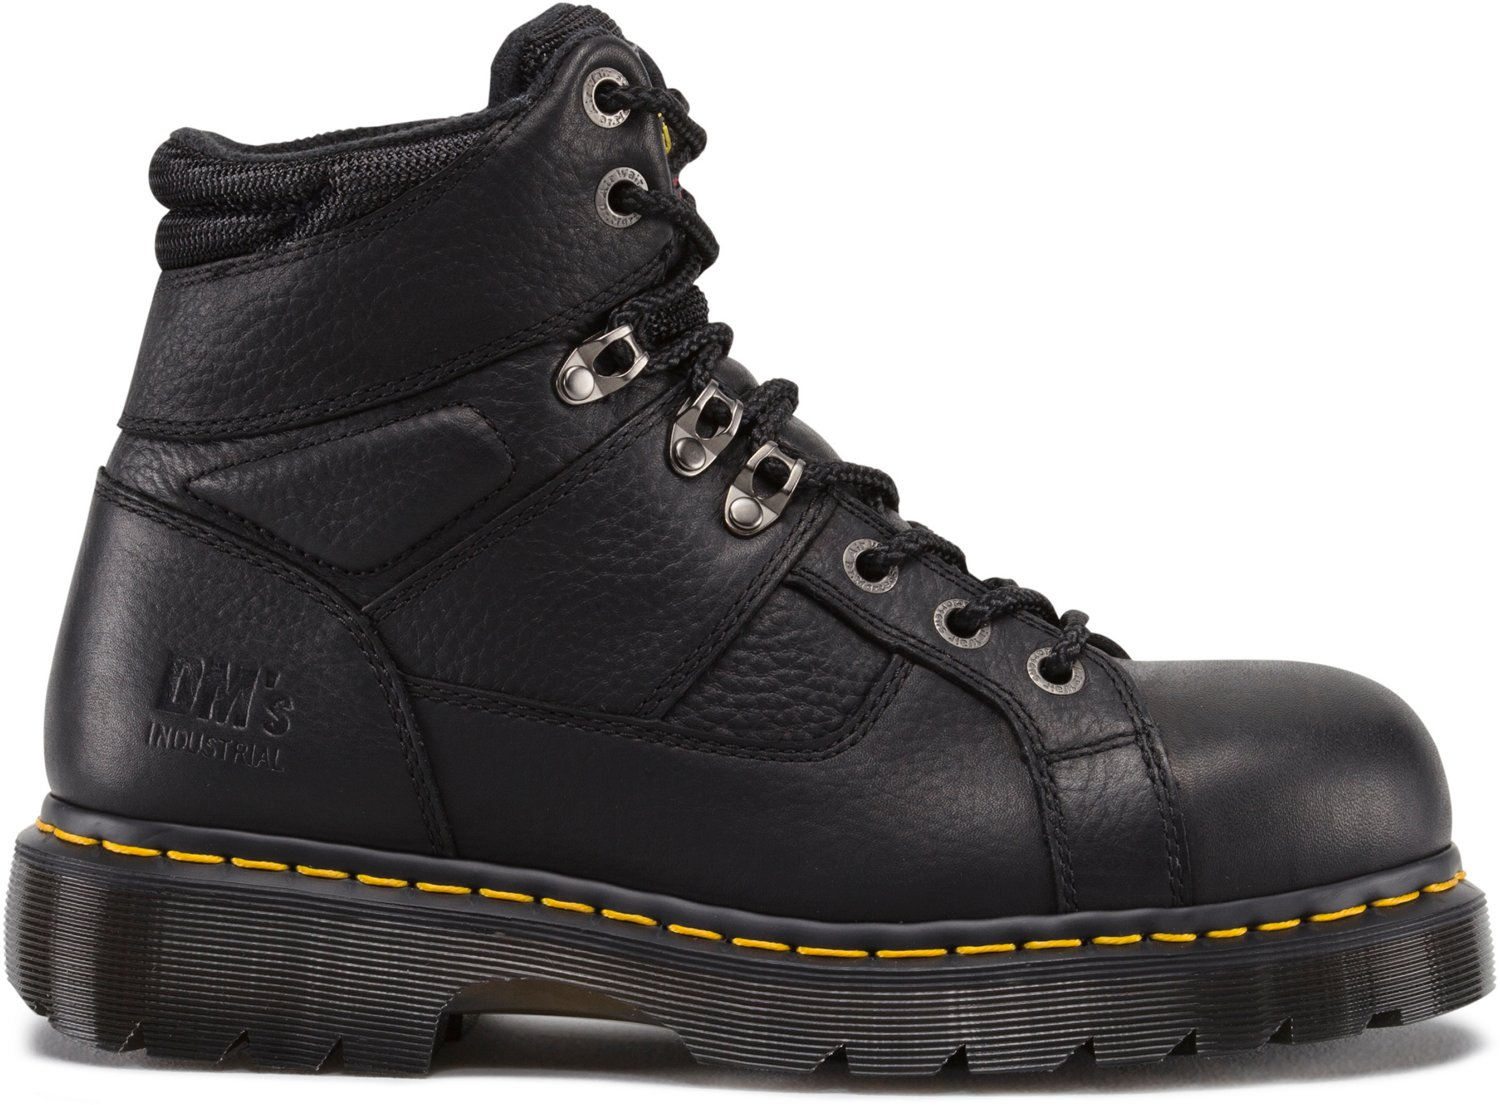 8926d3919641 Display product reviews for Dr. Martens Men s Heritage Ironbridge Work Boots